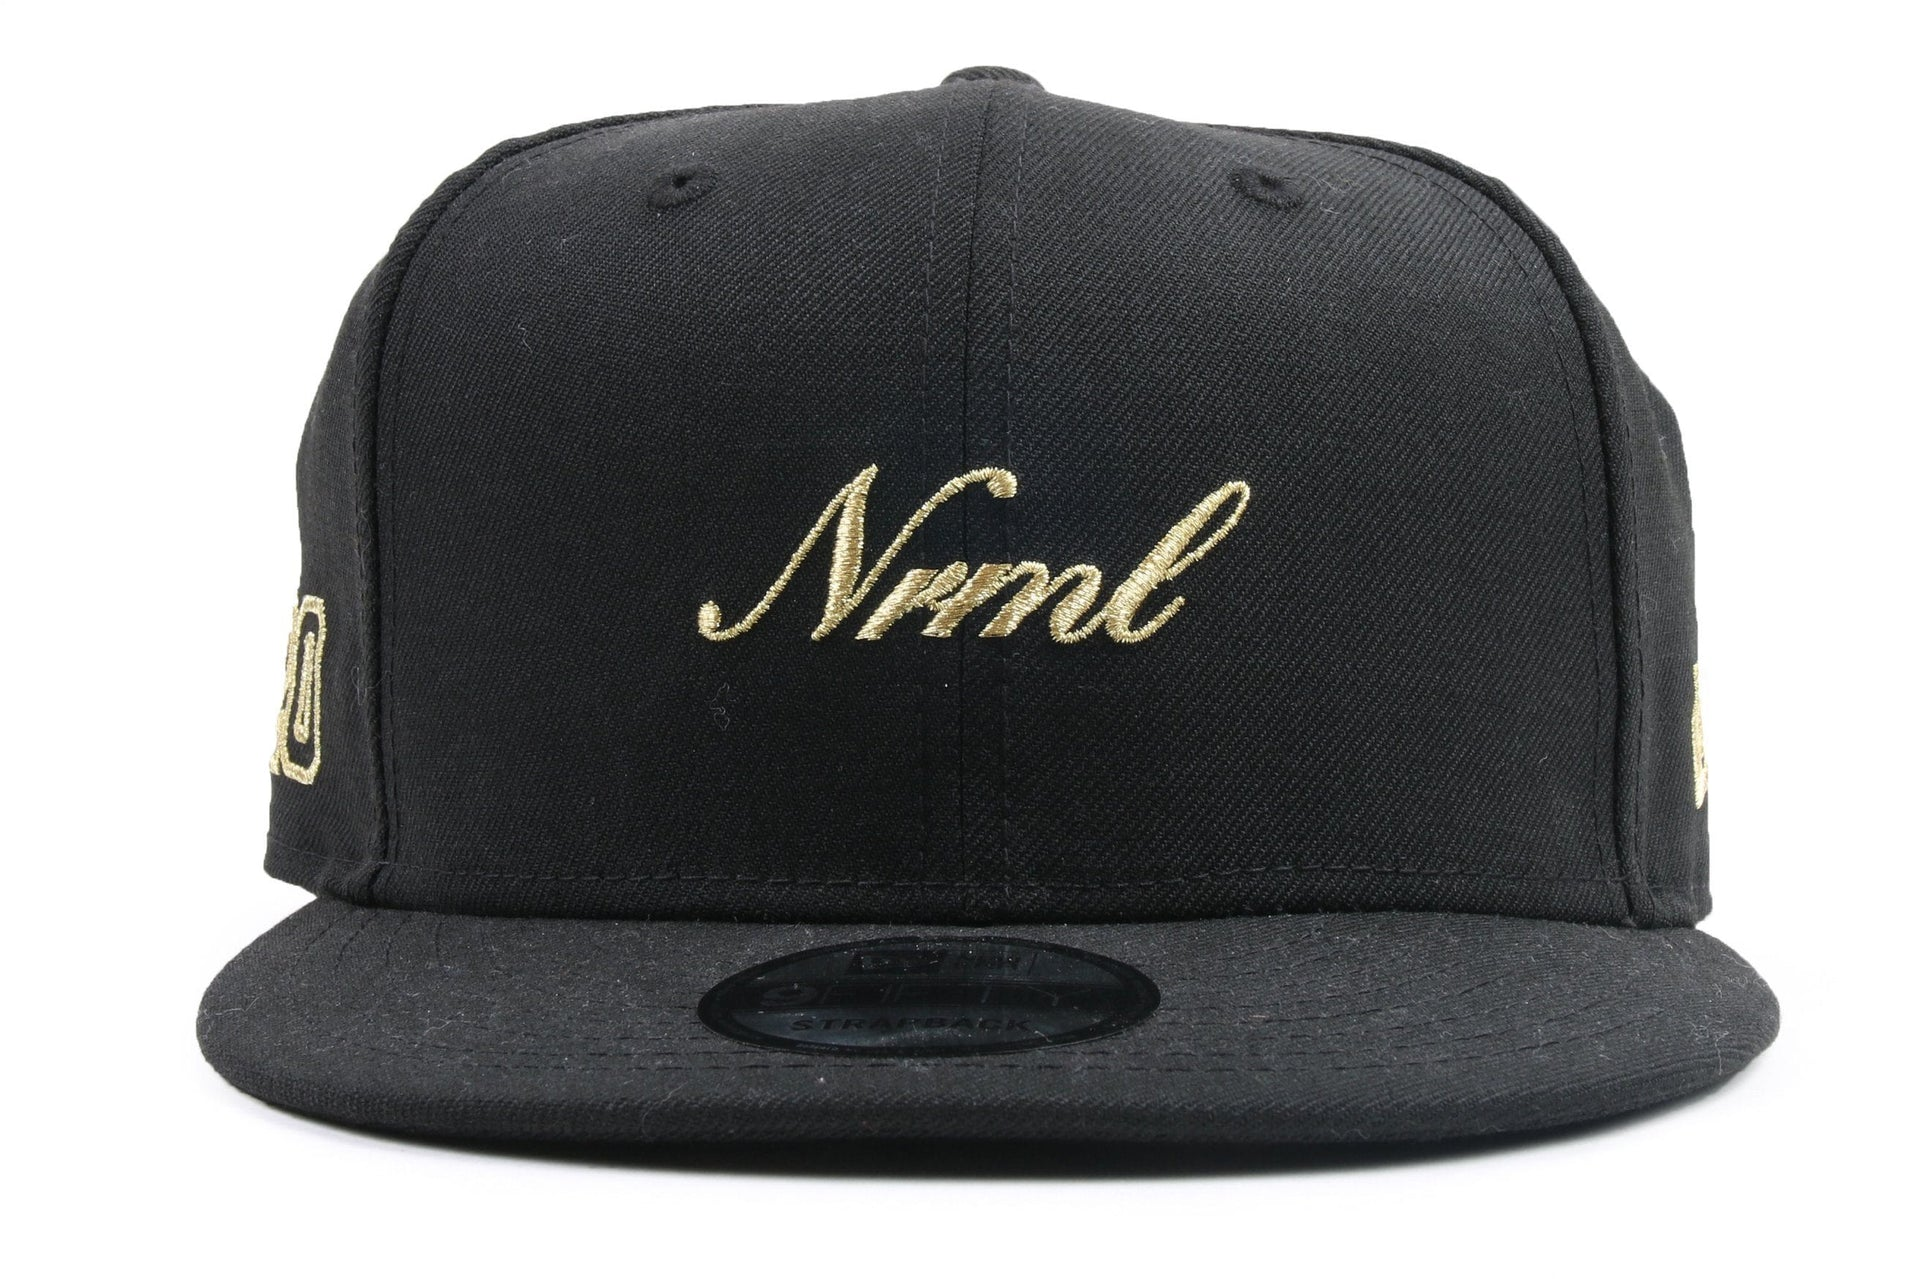 NRML SCRIPT BLACK GOLD HATS NRML BLACKGOLD ONE SIZE D17